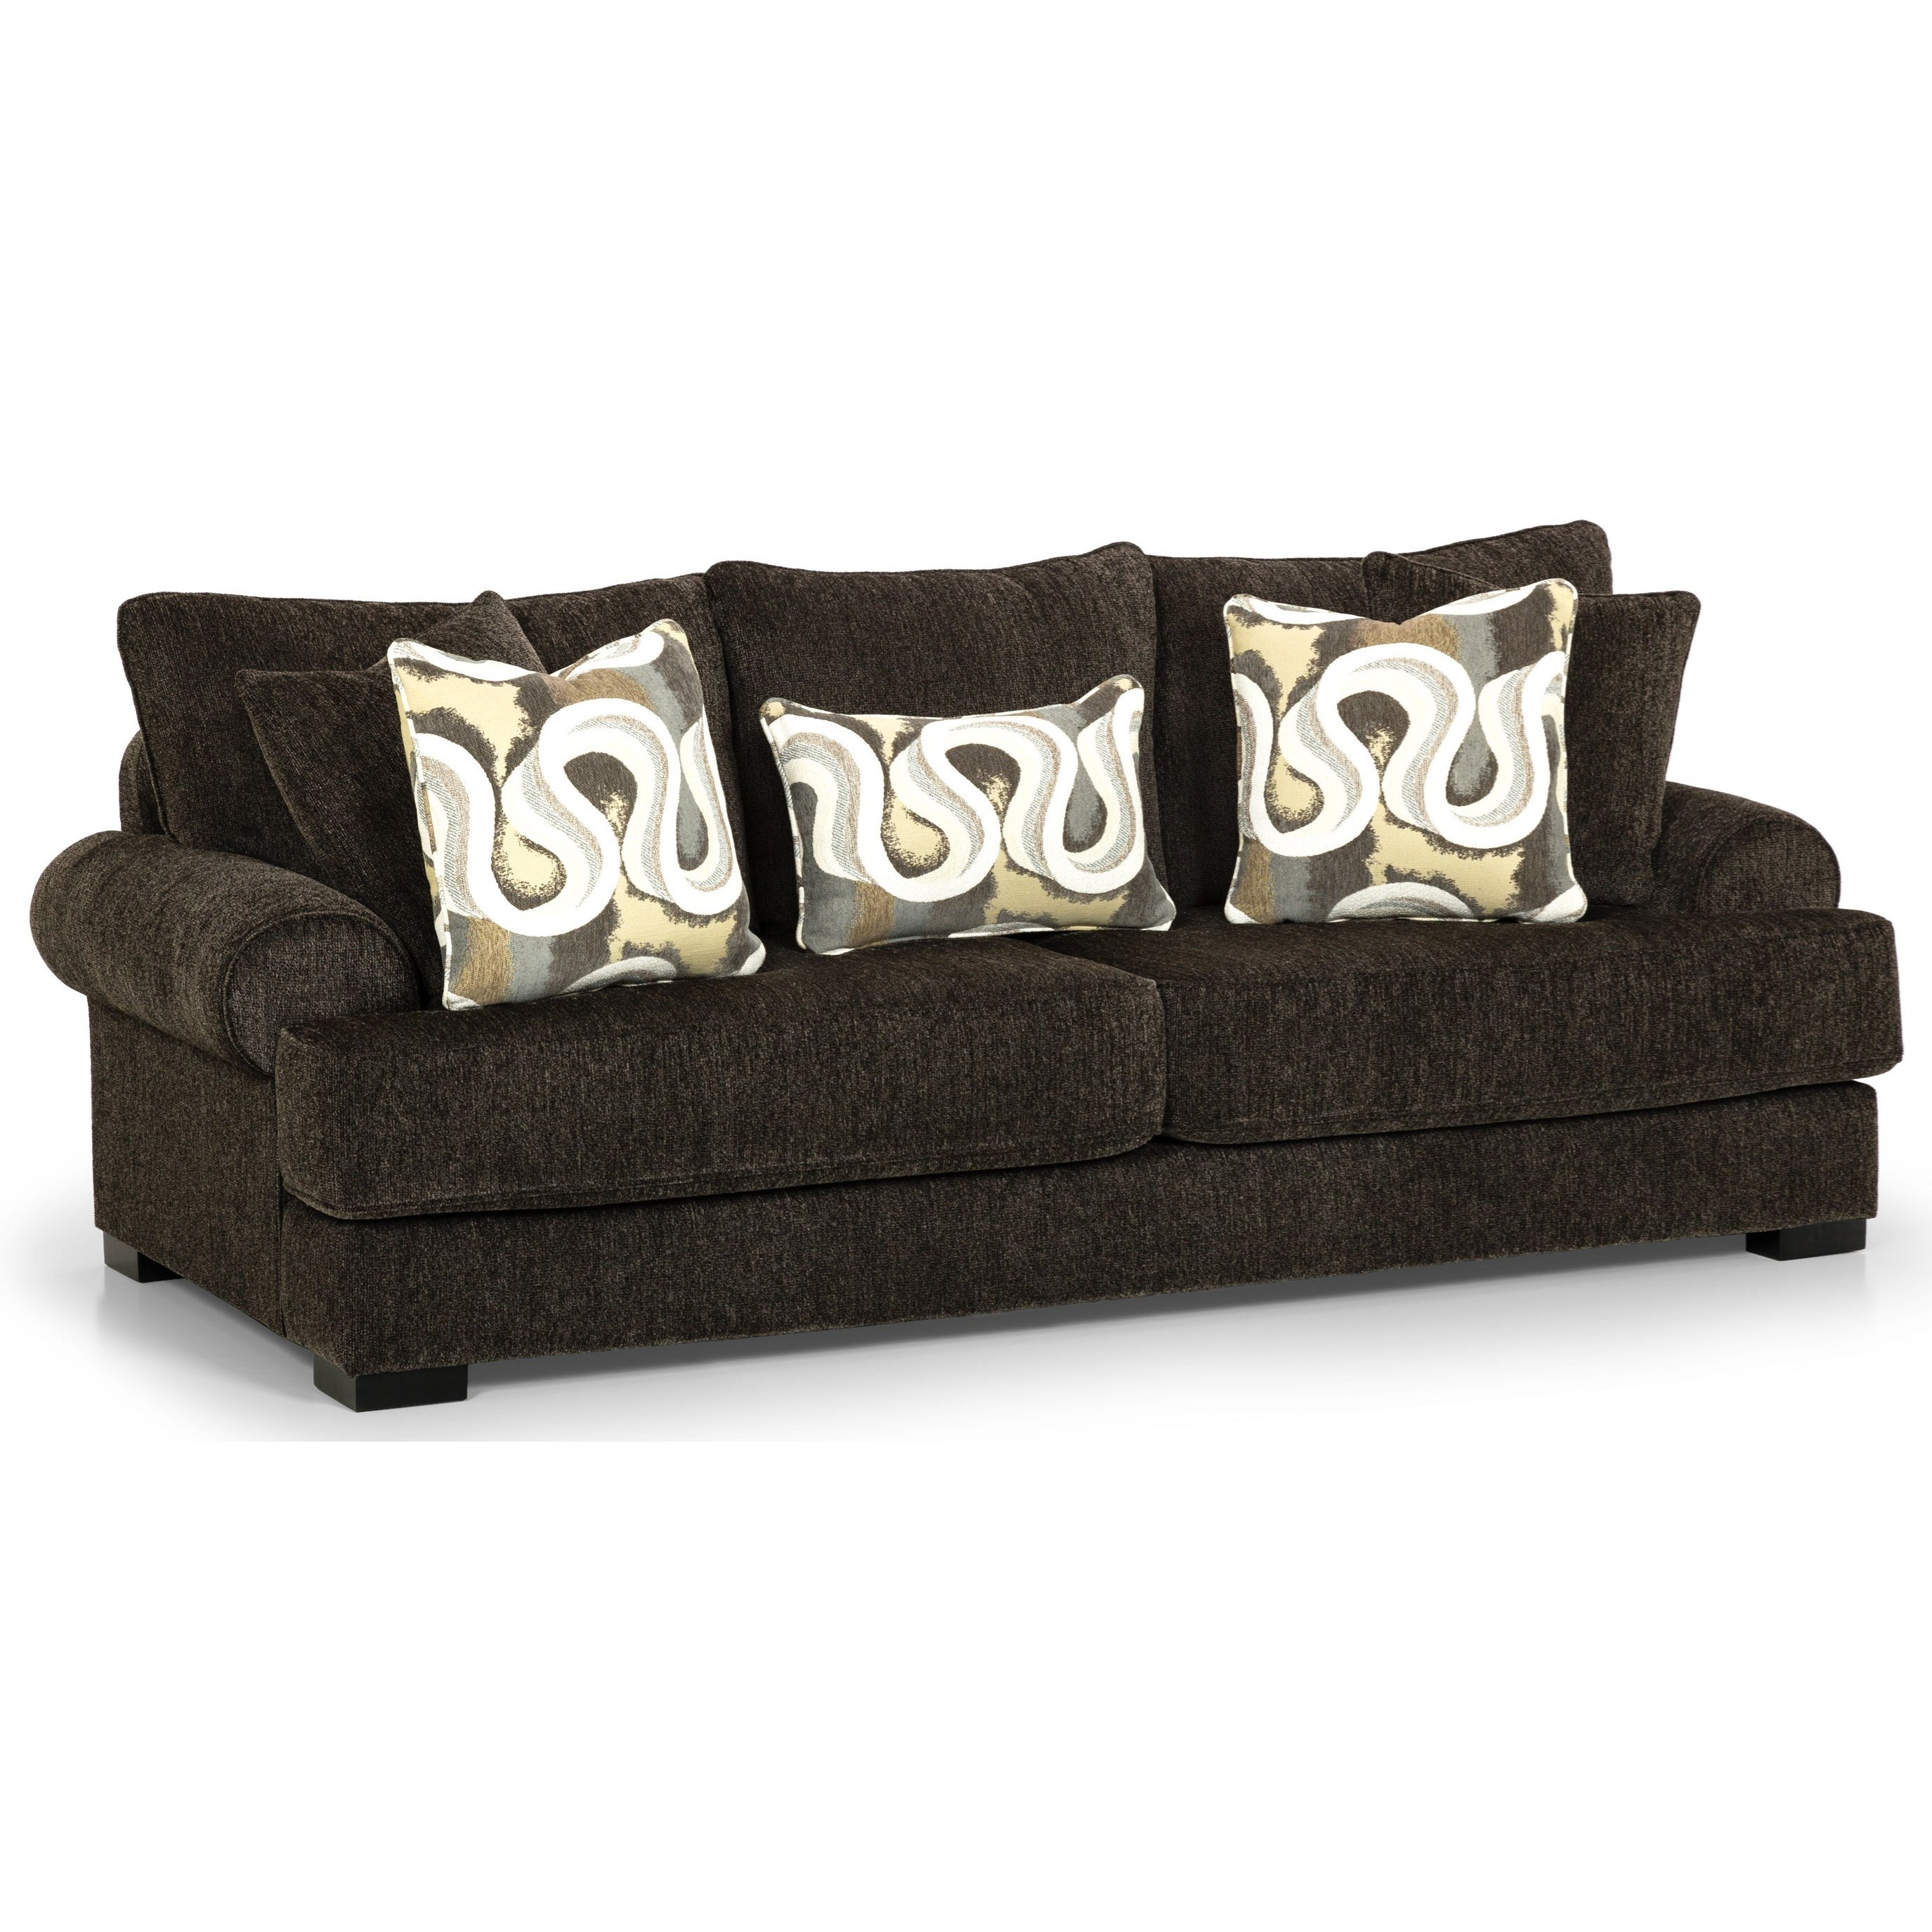 475 Sofa by Stanton at Wilson's Furniture